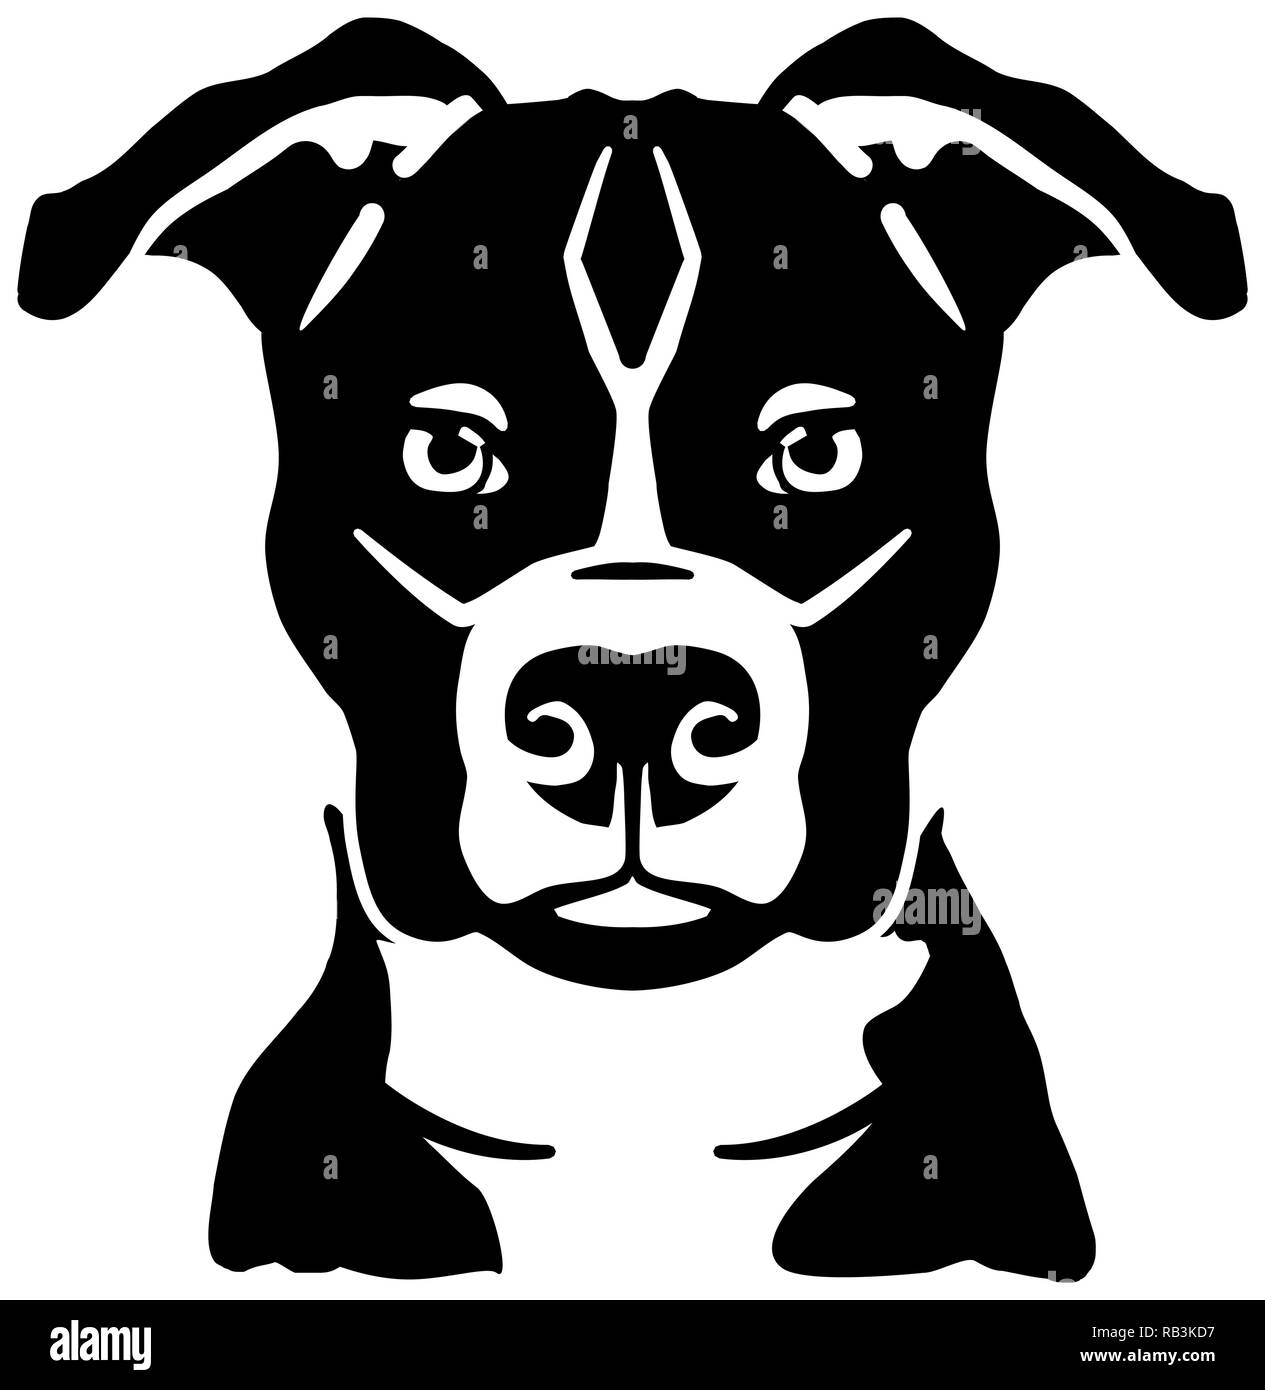 Staffordshire Bull Terrier head black and white - Stock Image